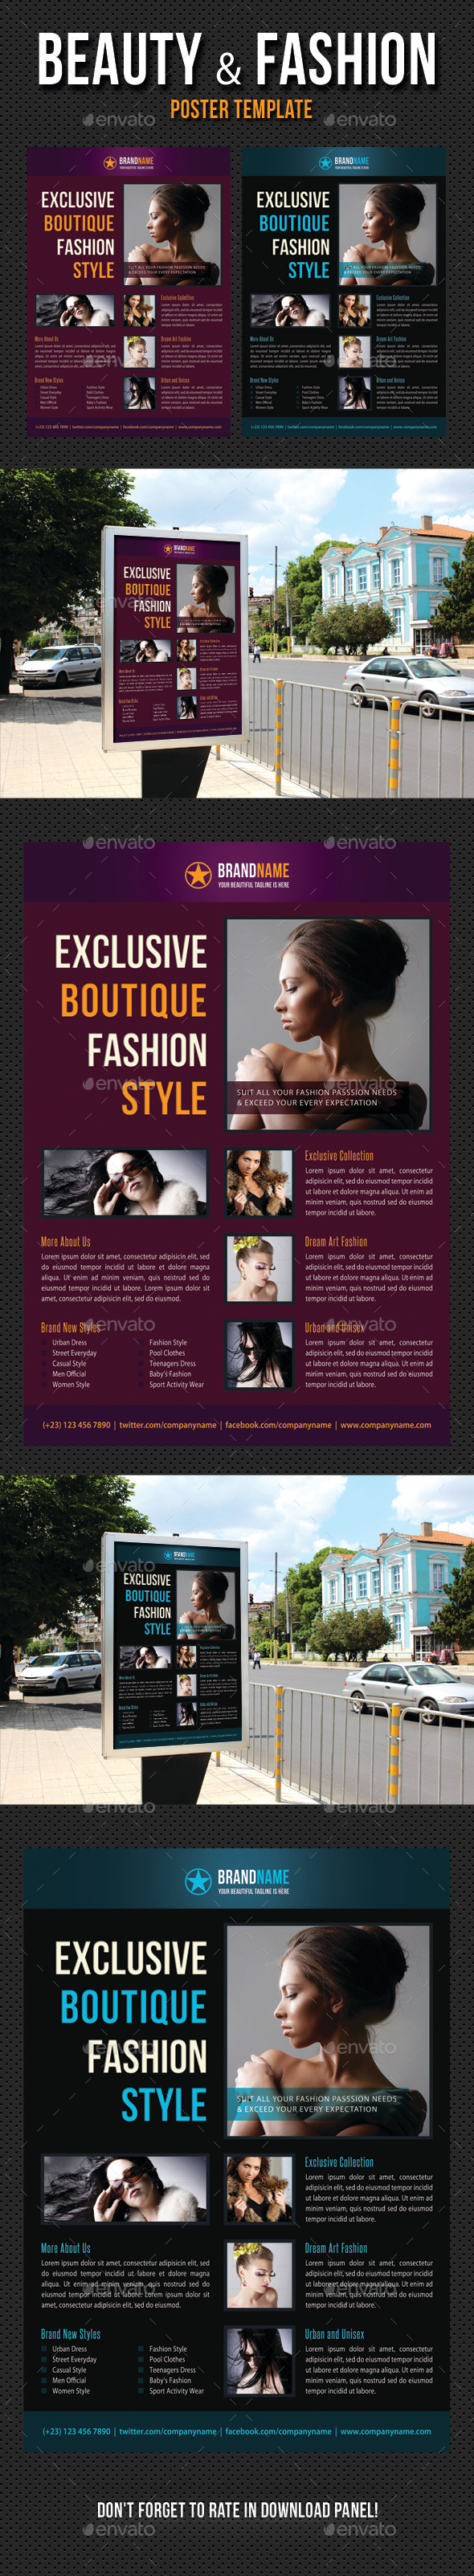 Beauty and Fashion Poster Template V09 - Signage Print Templates